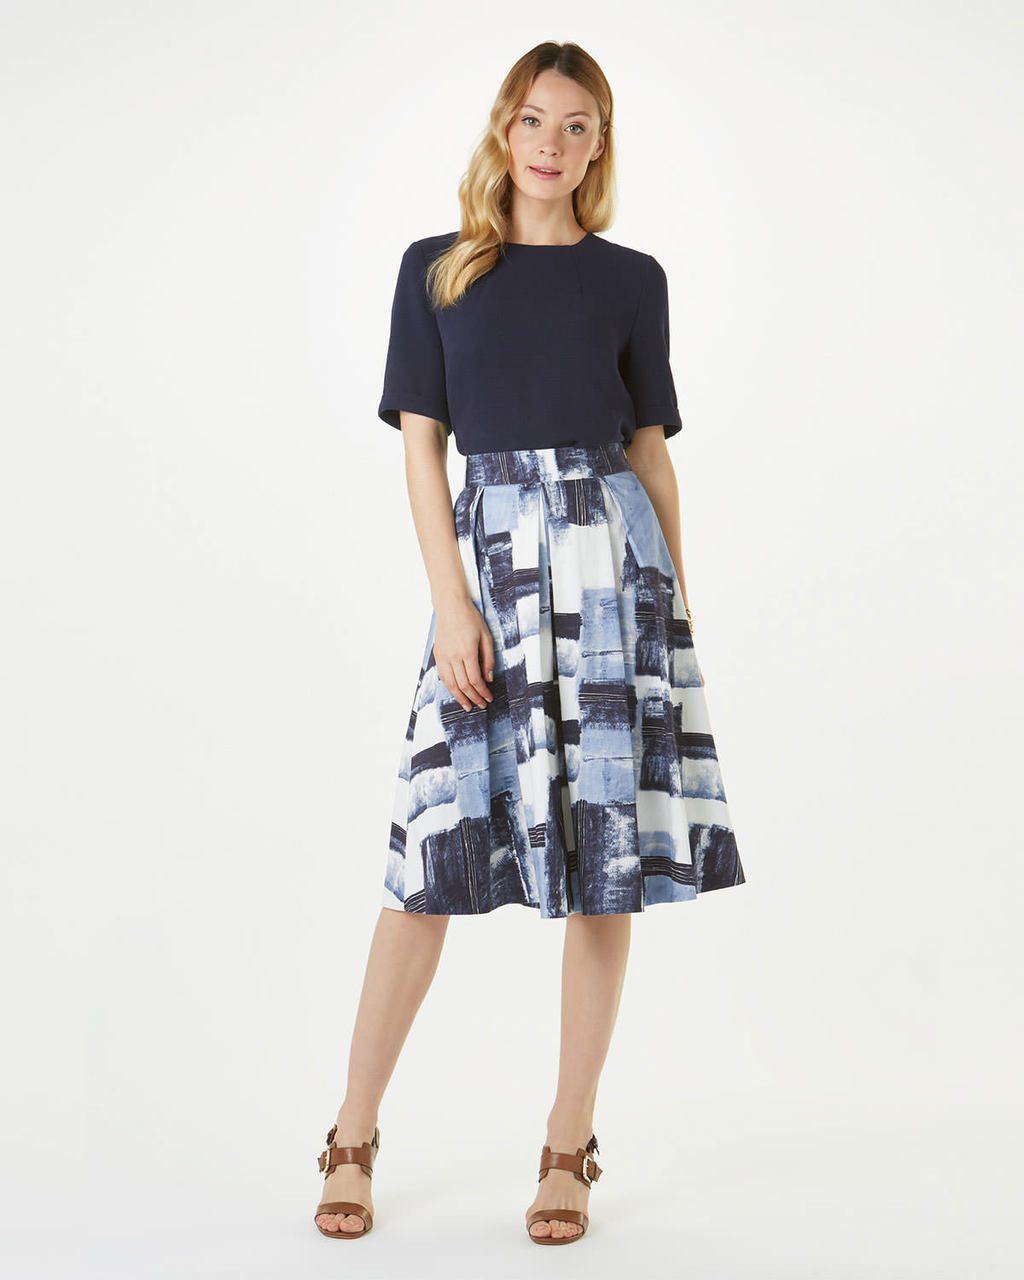 Novella Skirt - pattern: plain; style: full/prom skirt; fit: loose/voluminous; waist: high rise; secondary colour: pale blue; predominant colour: navy; length: on the knee; fibres: cotton - stretch; occasions: occasion, creative work; hip detail: subtle/flattering hip detail; pattern type: fabric; texture group: other - light to midweight; pattern size: big & busy (bottom); multicoloured: multicoloured; season: s/s 2016; wardrobe: basic